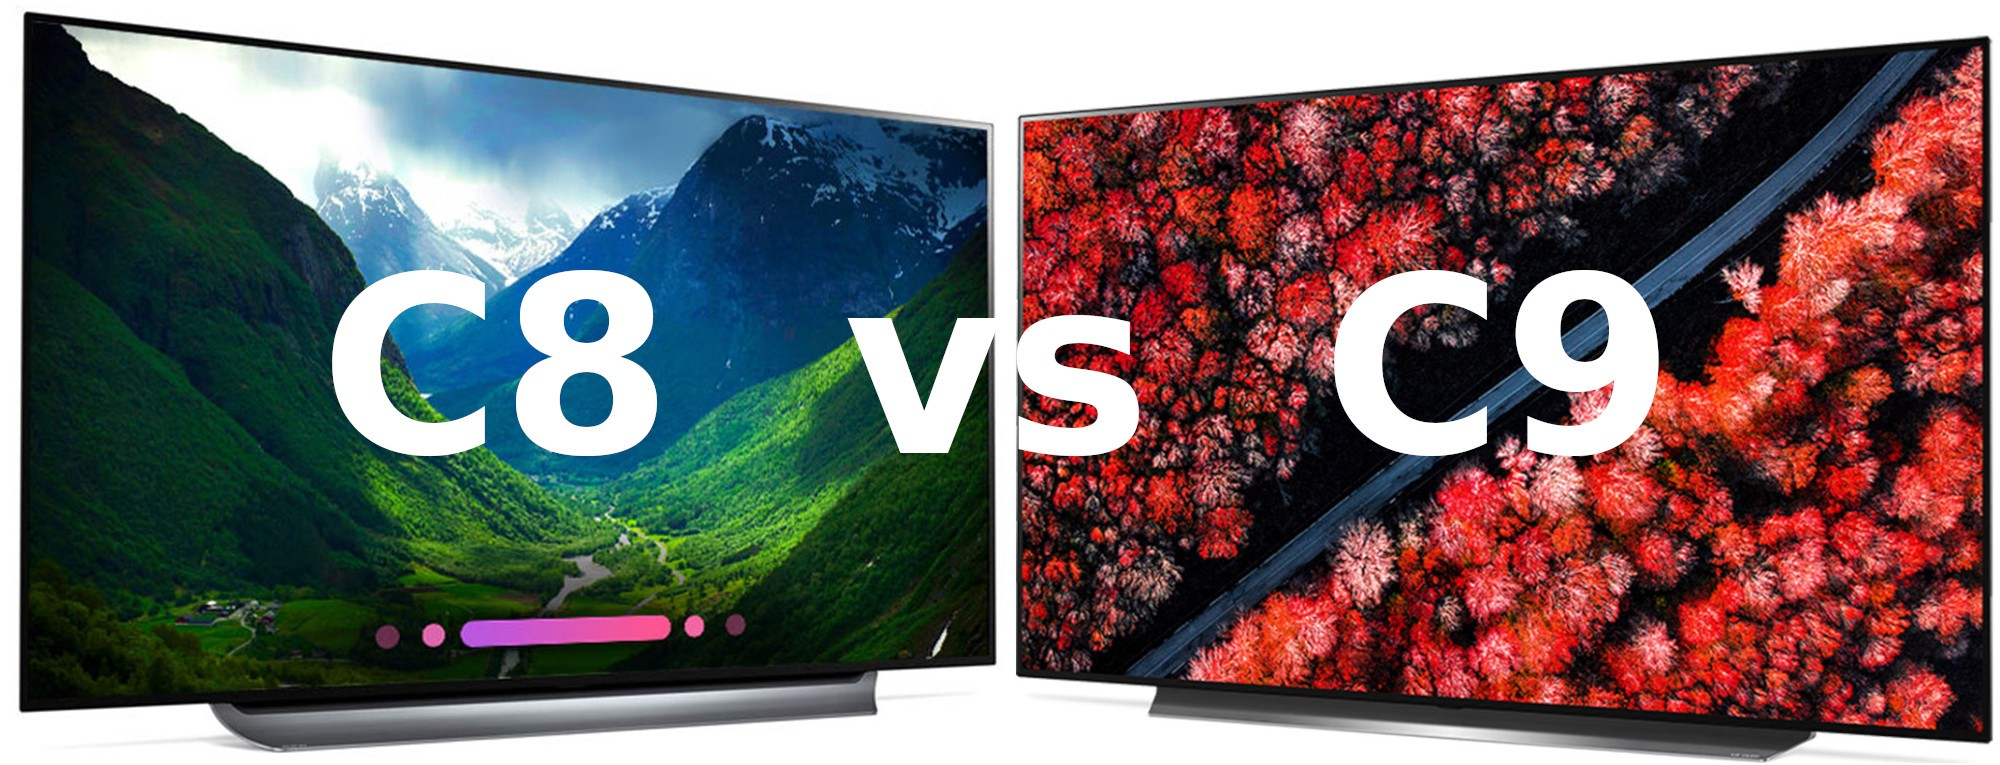 LG C8 vs C9 Review (OLED77C8PUA vs OLED77C9PUB